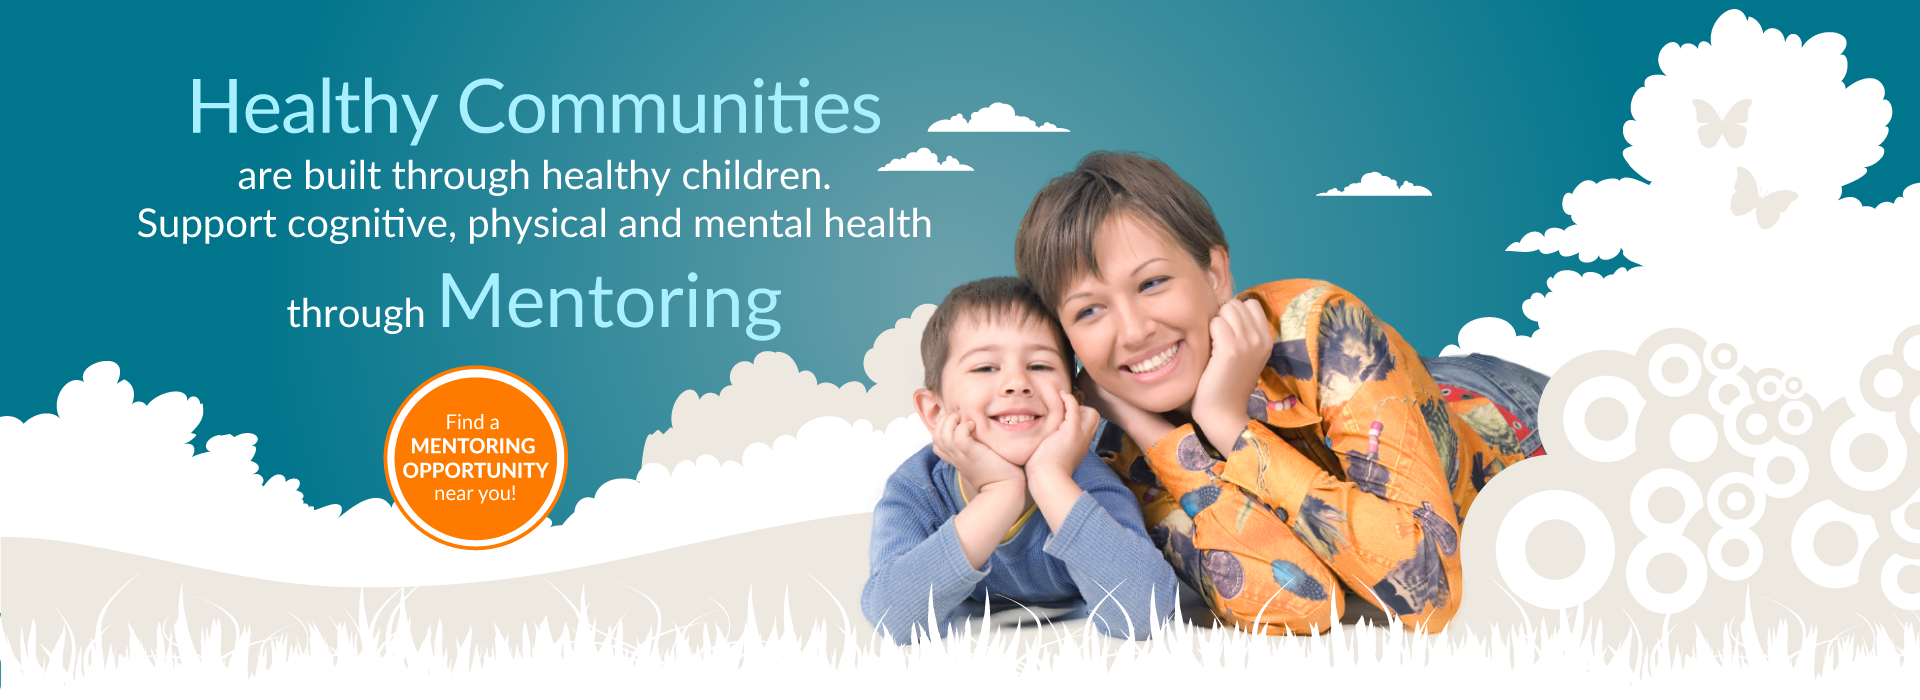 alberta mentoring partnership a mentoring opportunity near you